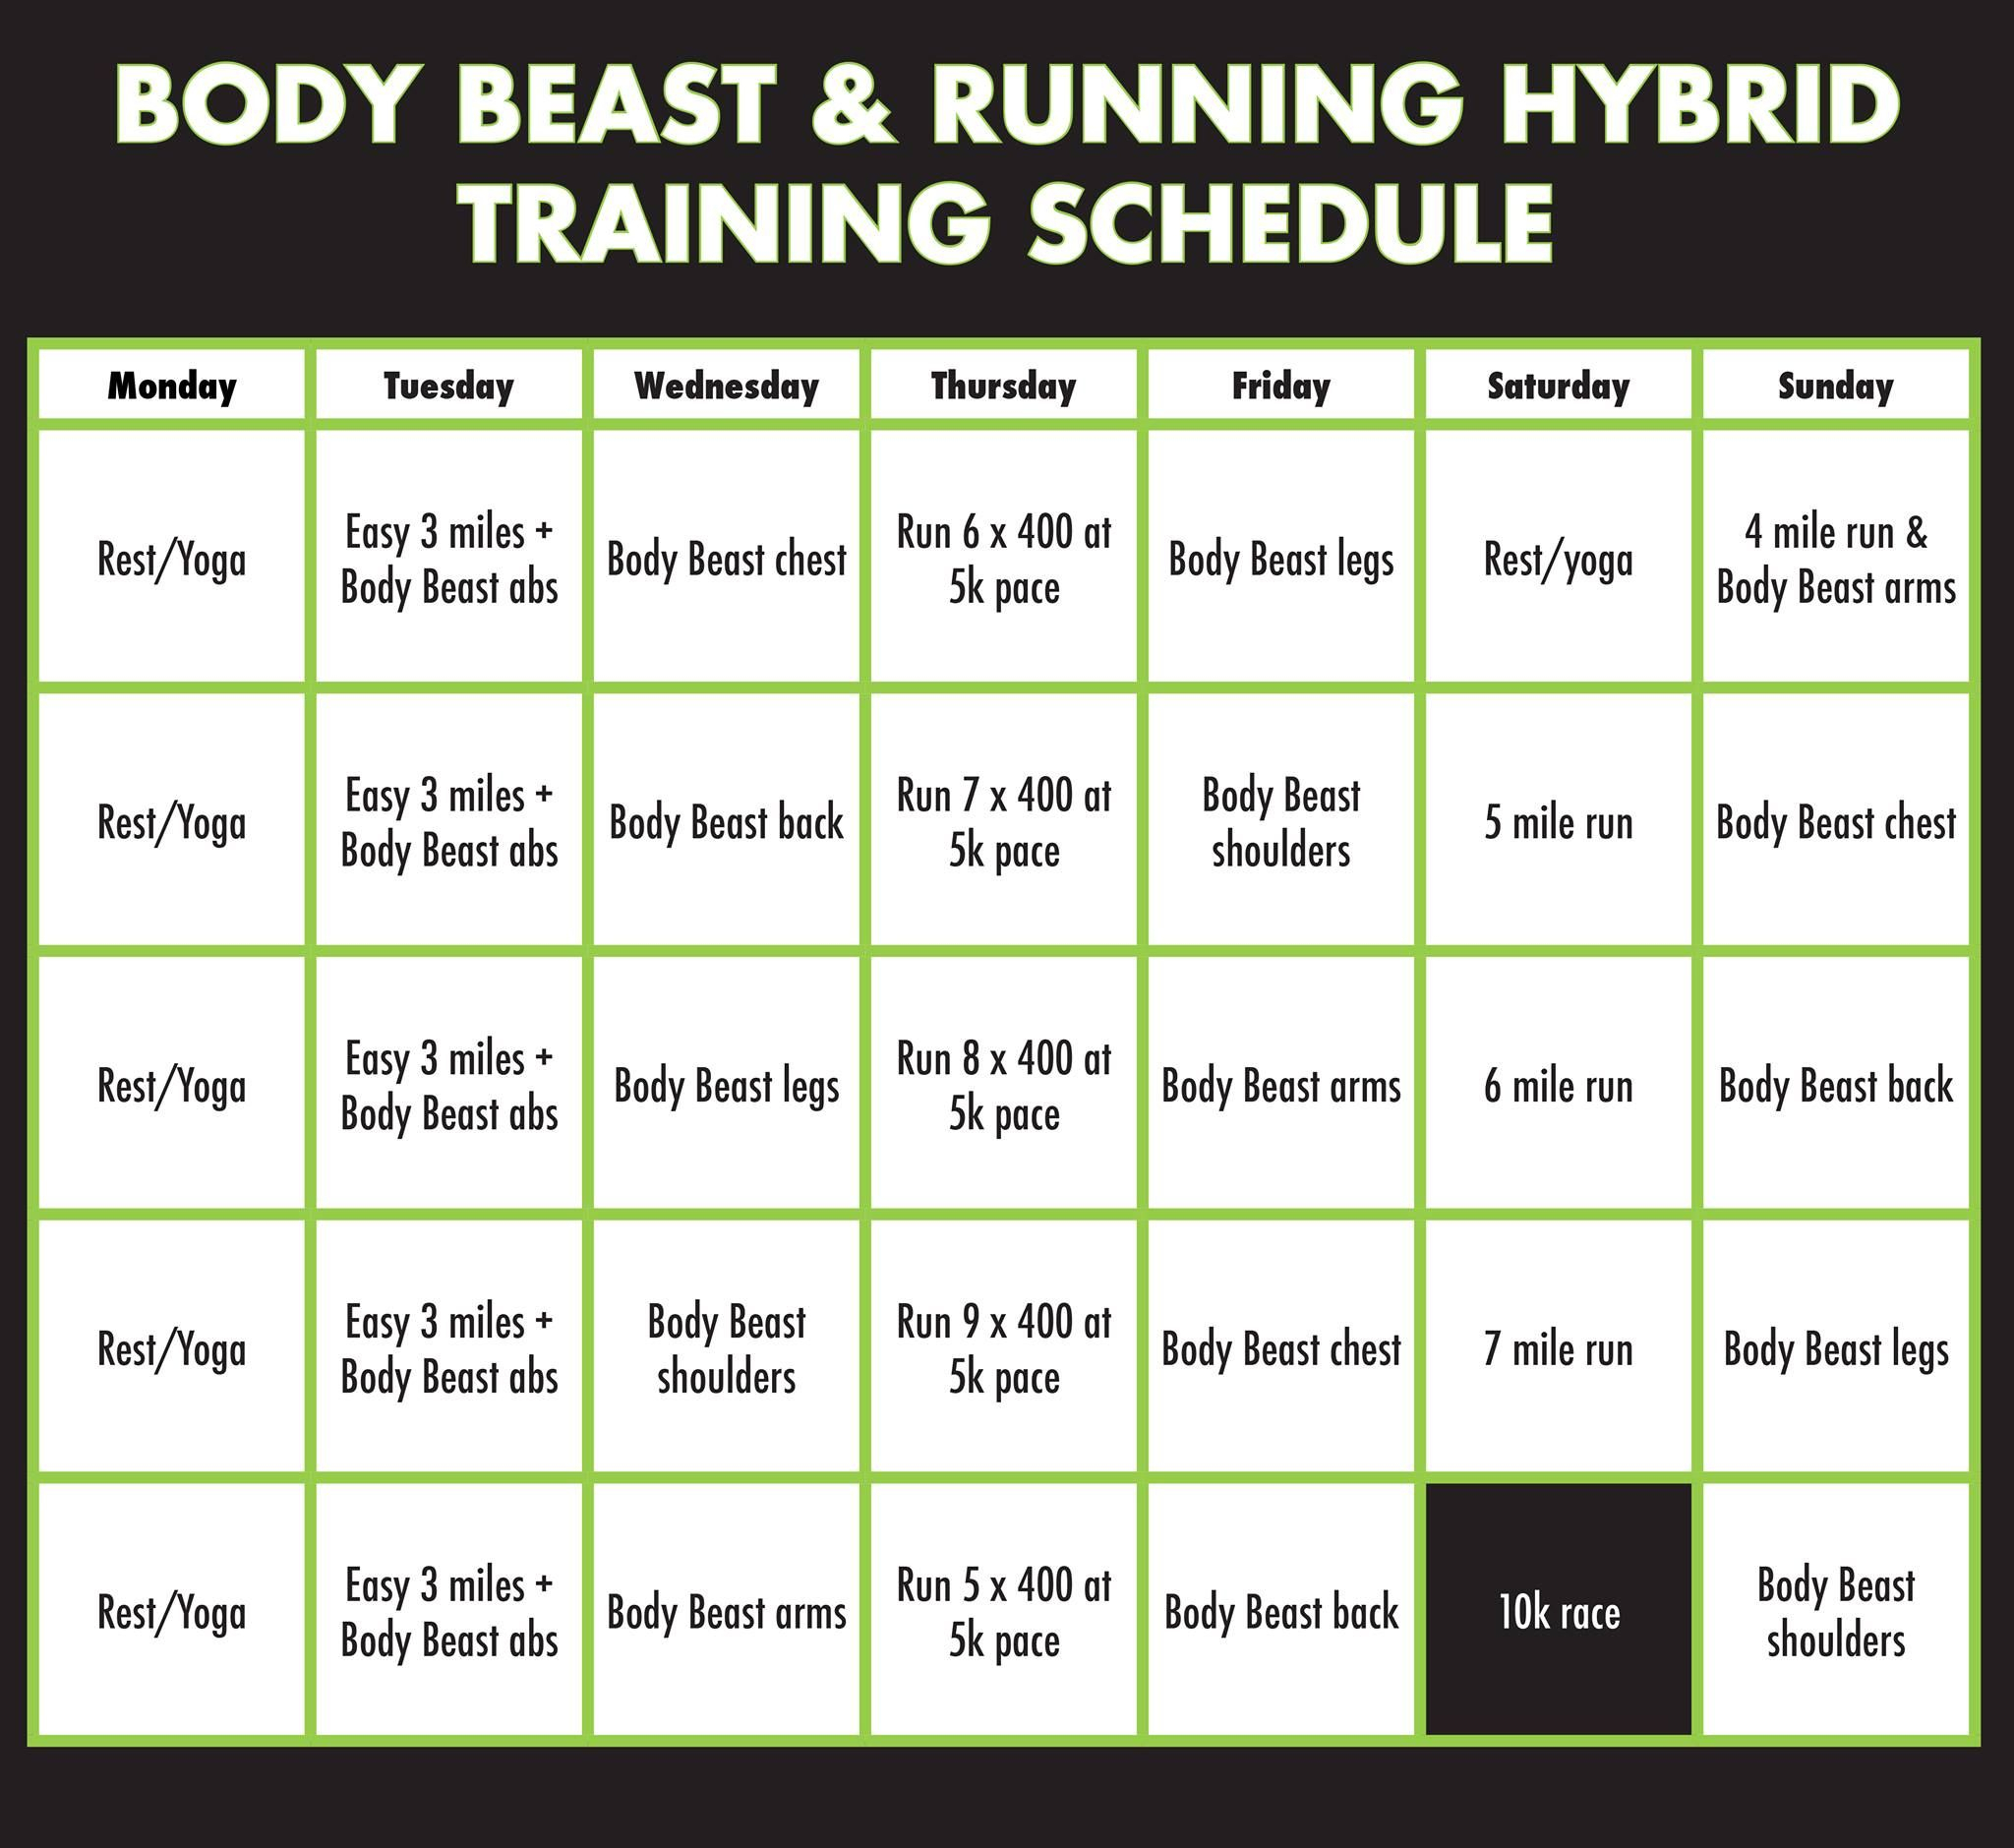 Body Beast + Running Hybrid Training Schedule | Body Beast regarding Body Beast Hybrid